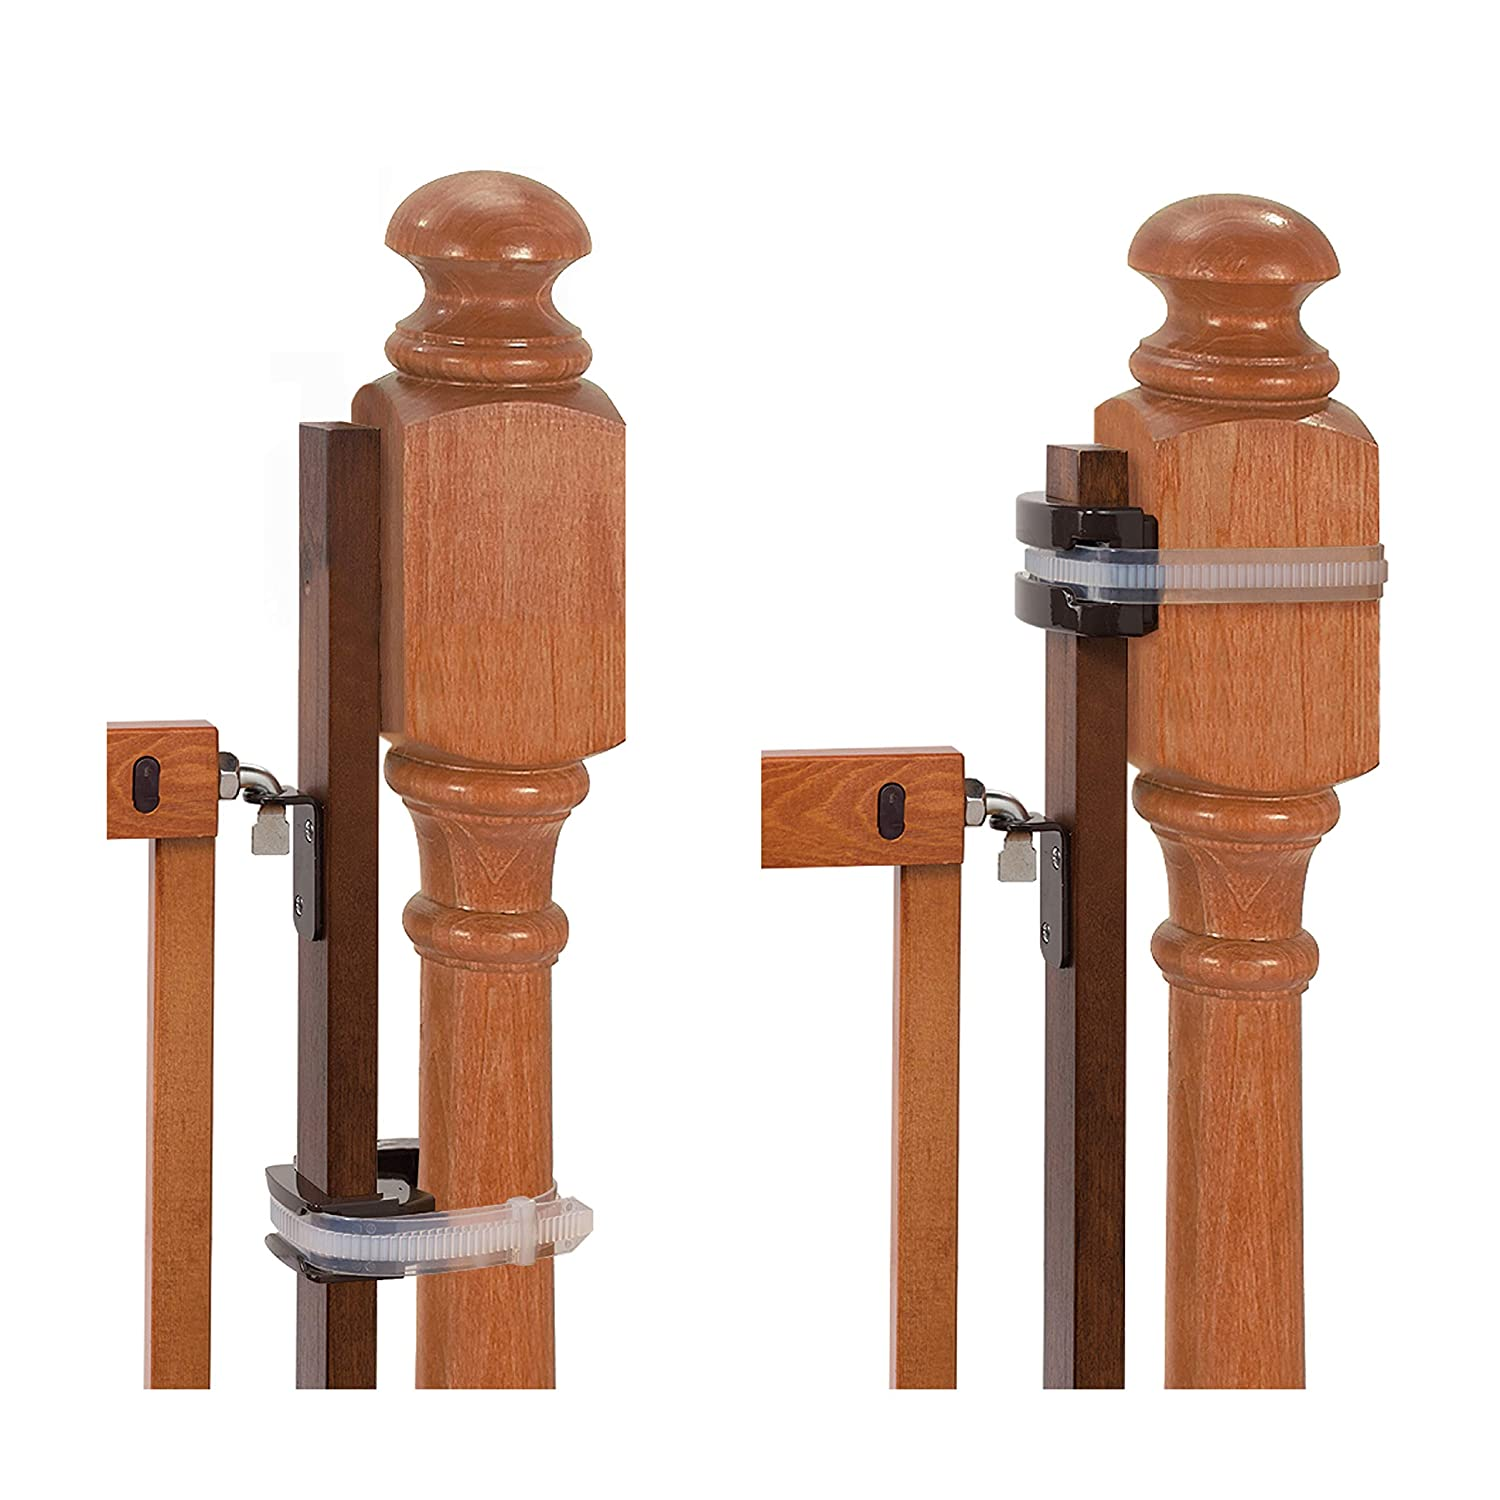 """Summer Banister to Banister Gate Mounting Kit - Fits Round or Square Banisters, Accommodates Most Hardware & Pressure Mount Baby Gates up to 37"""" Tall, Gate Sold Separately"""